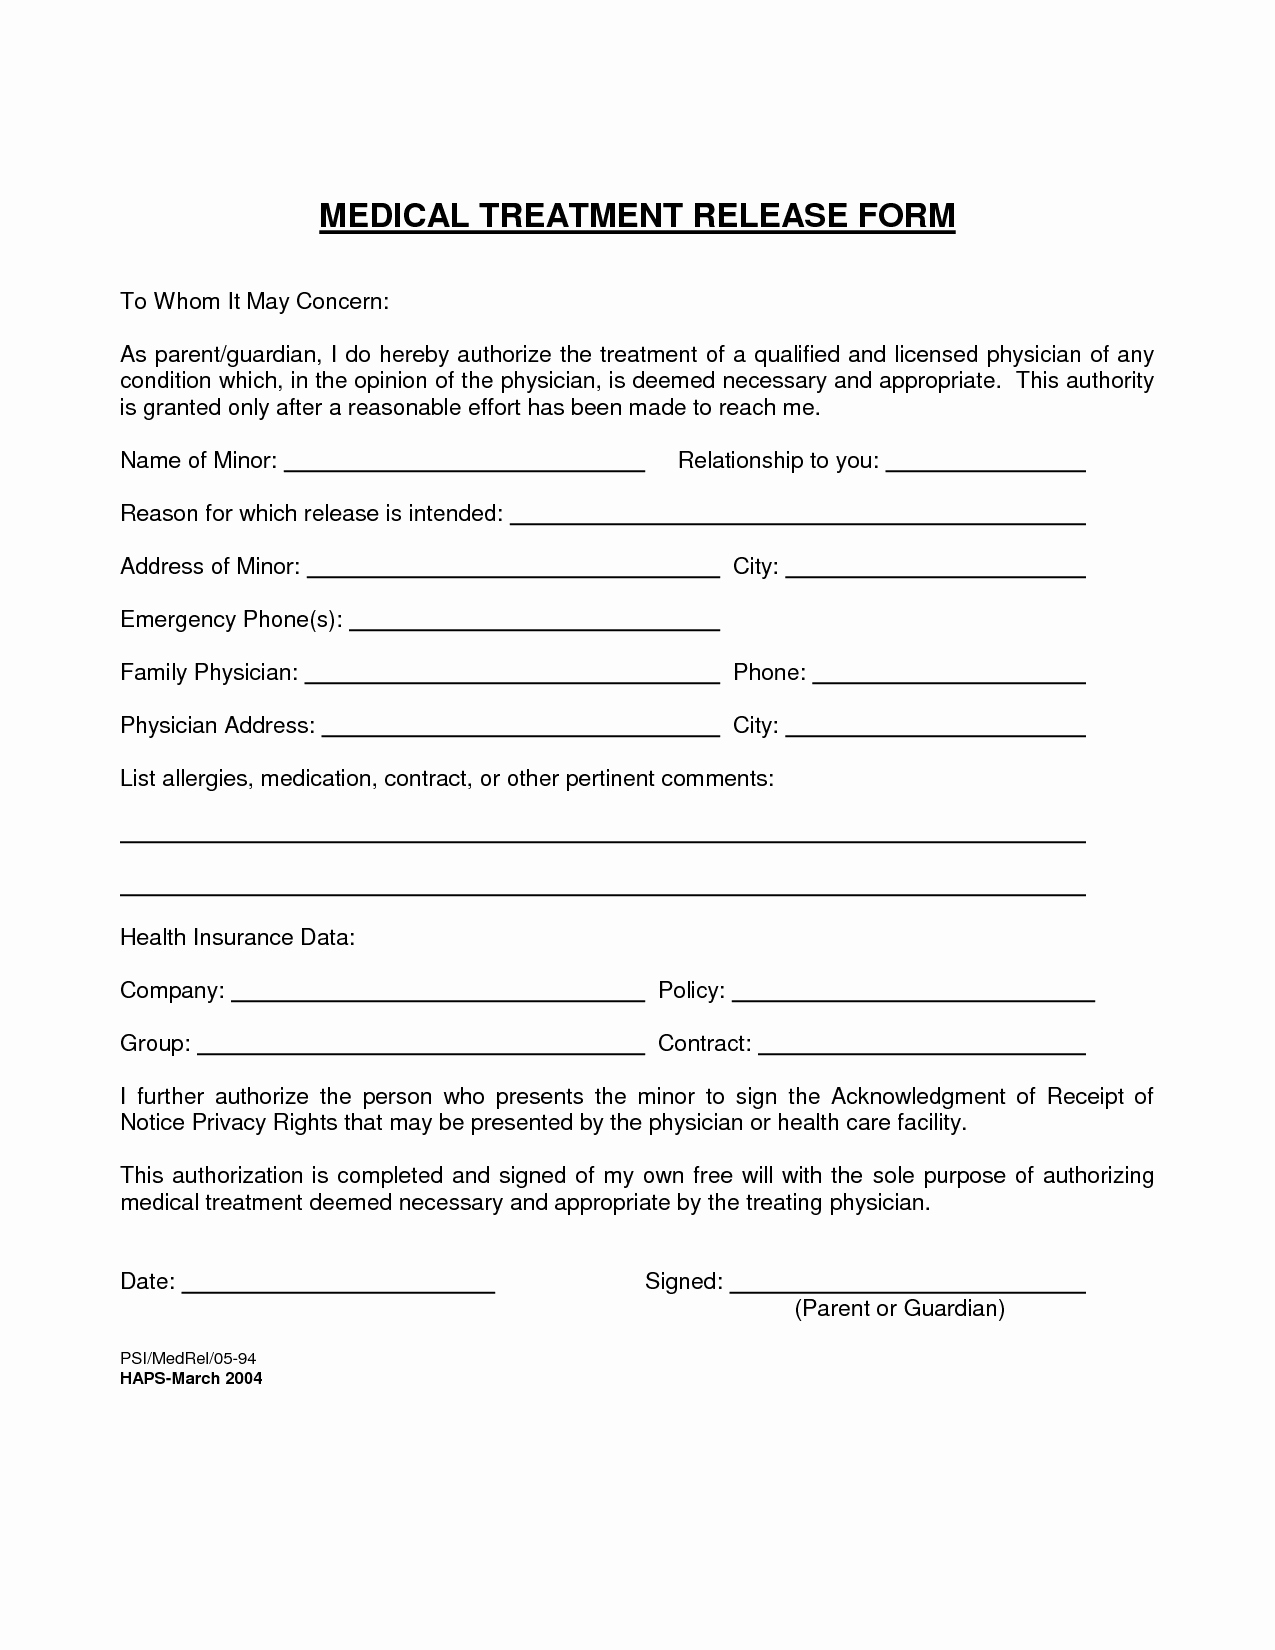 Emergency Room Release form Template Awesome Medical Treatment Release form Free Printable Documents